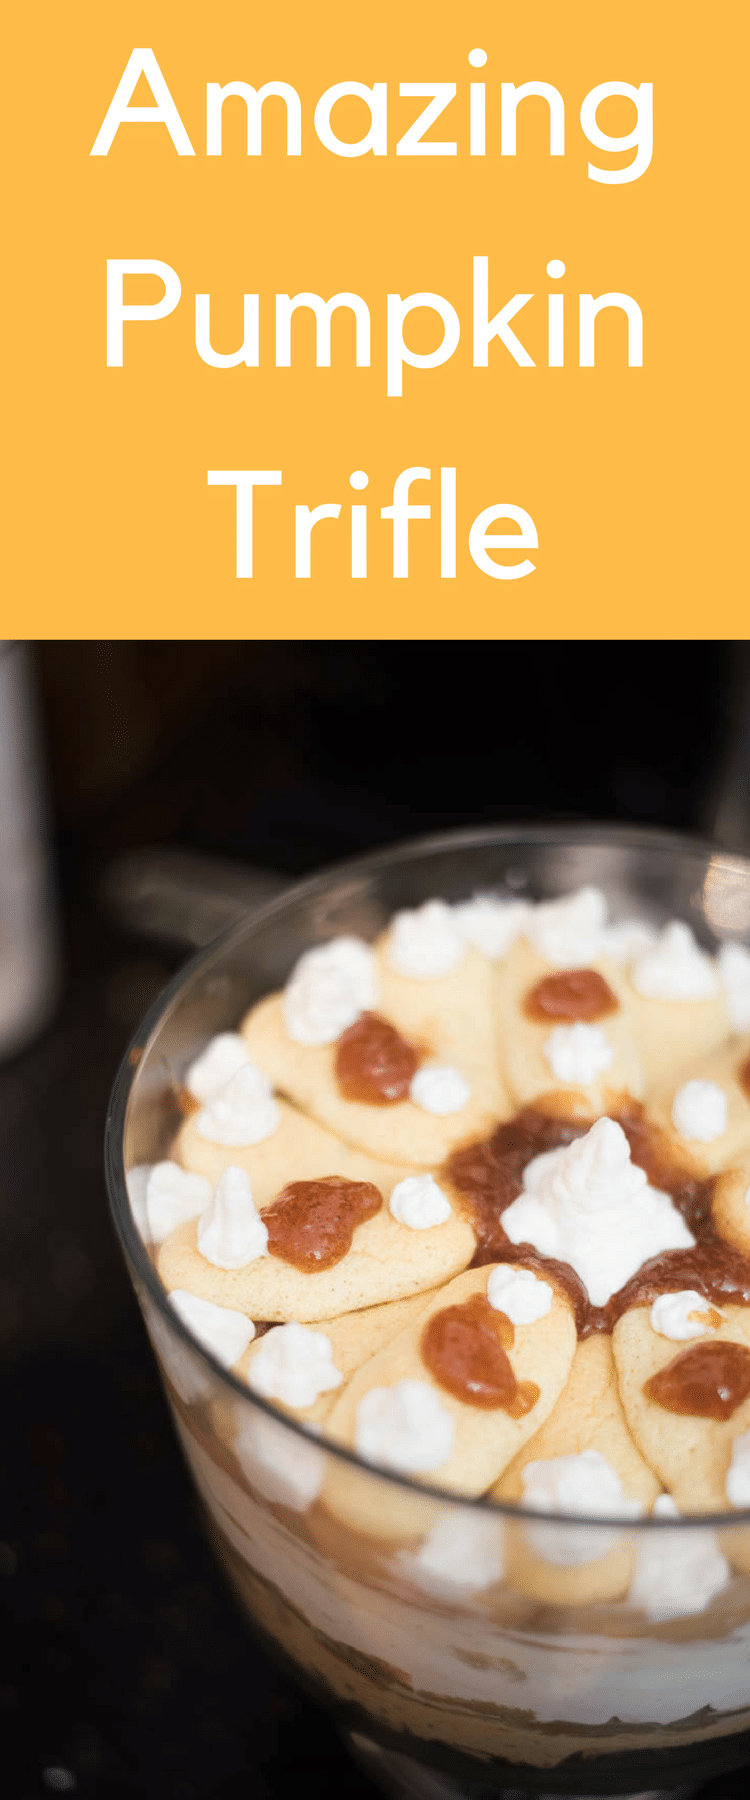 pumpkin trifle / fall trifle / caramel apple trifle / pumpkin recipe / fall dessert #fall #fallrecipes #falldessert via @clarkscondensed